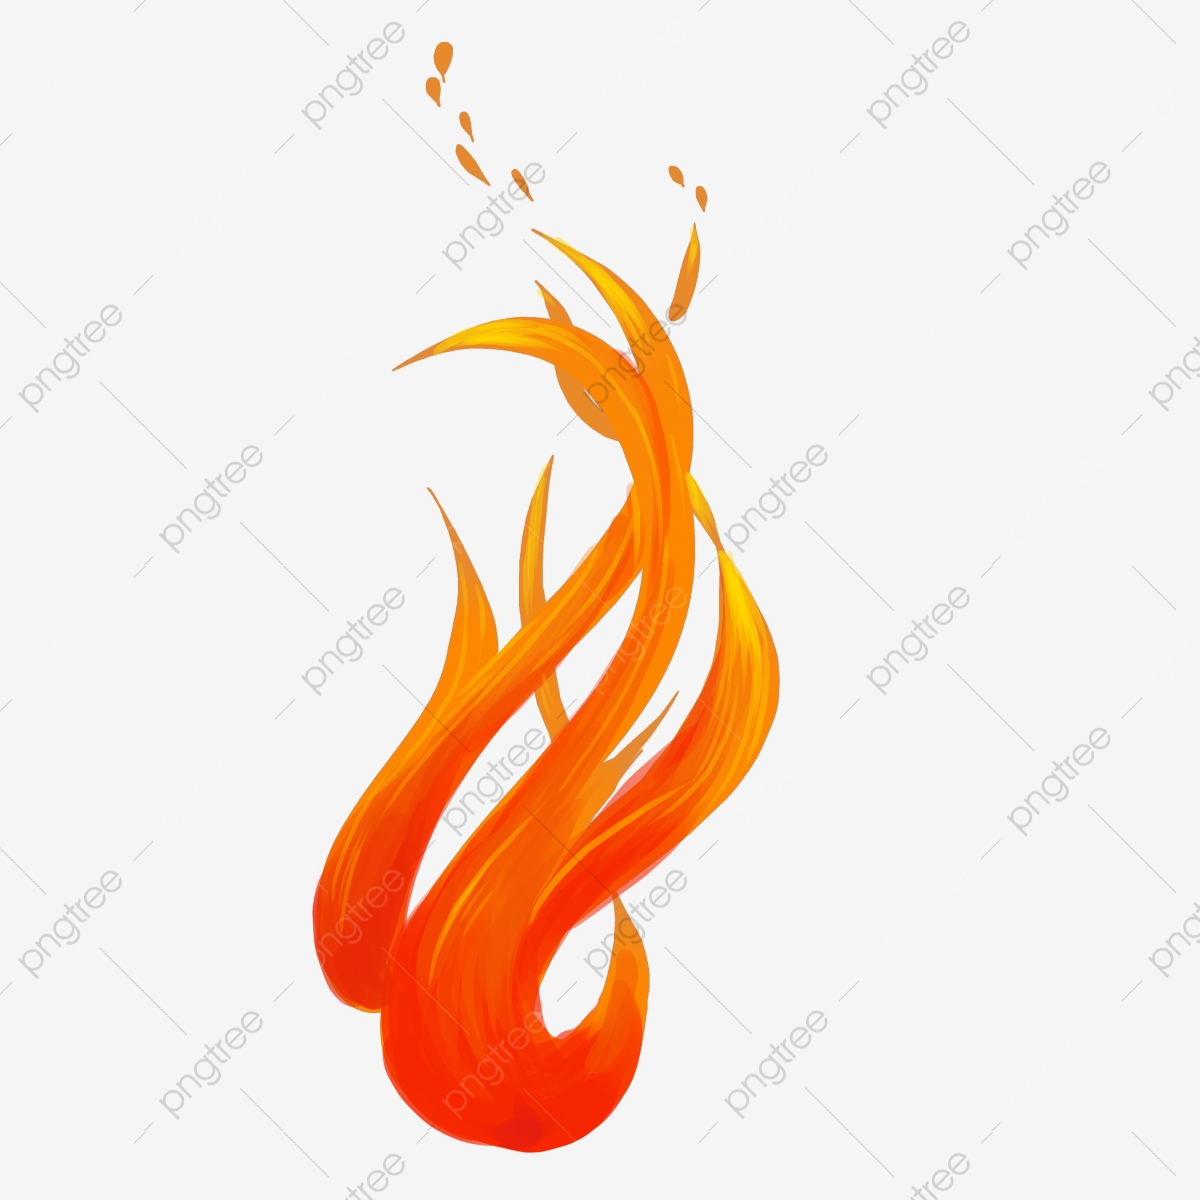 Flamme Orange Flamme Feu Decoration Dessin Anime Flamme Orange